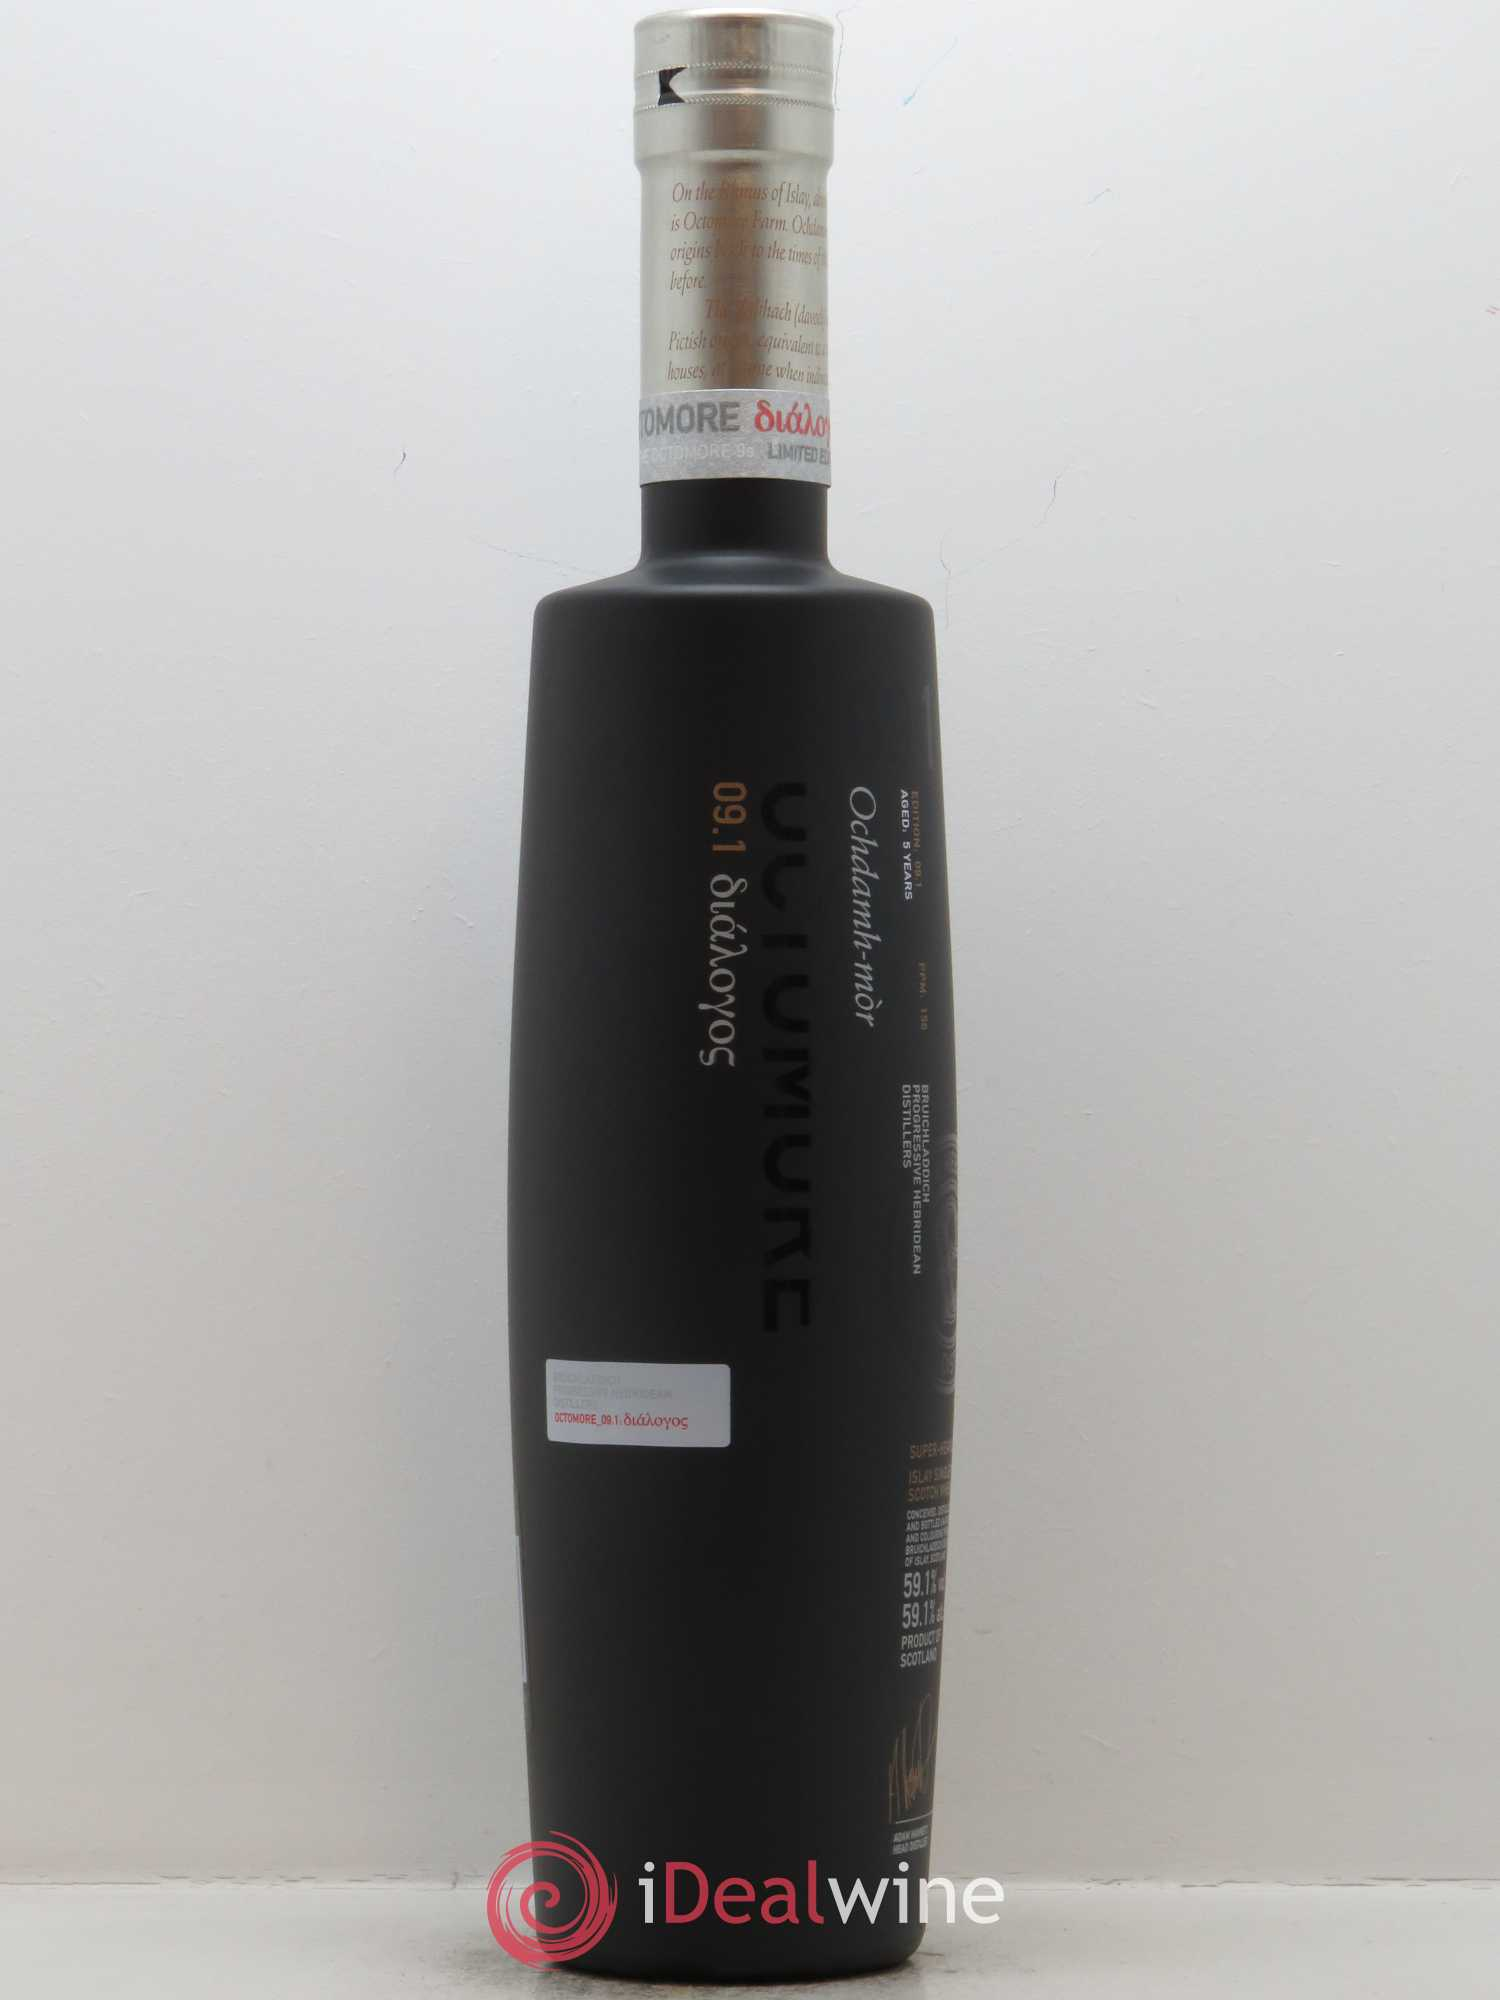 Whisky Octomore Edition 09.1 (70cl)  - Lot de 1 Bouteille